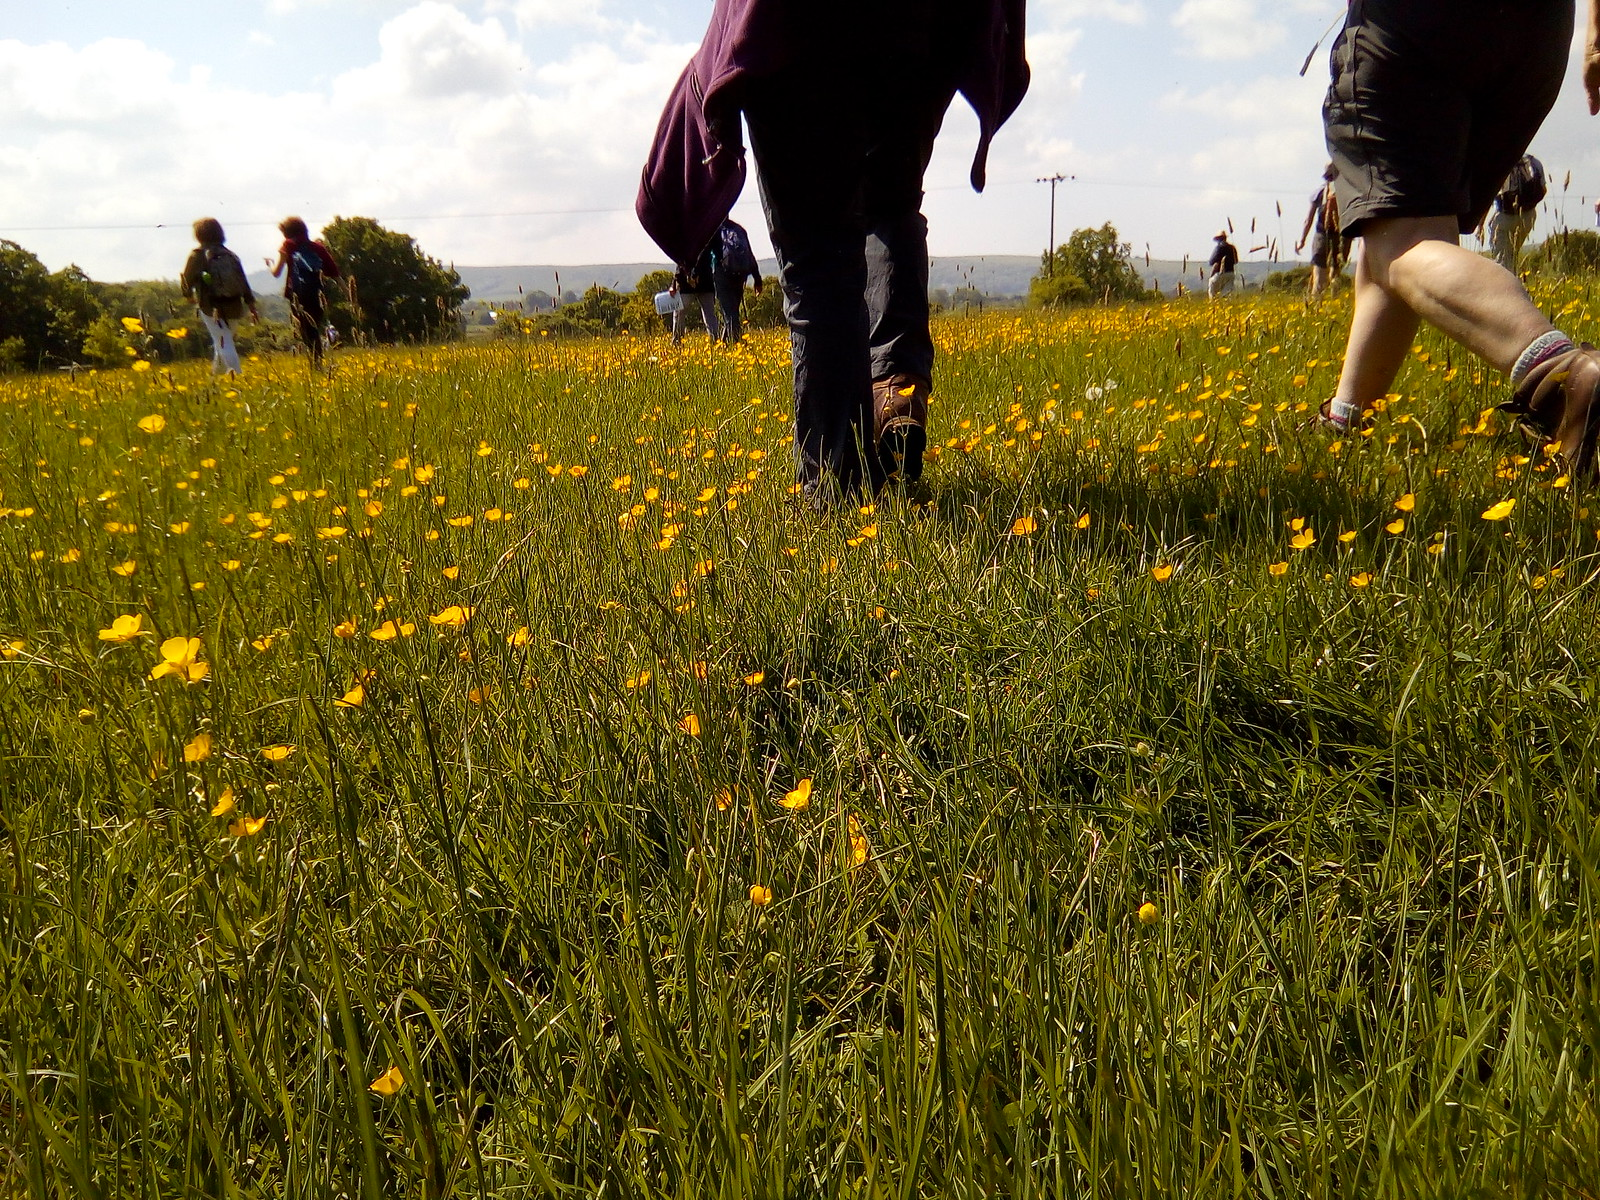 Trampling buttercups Mid-meadow course correction